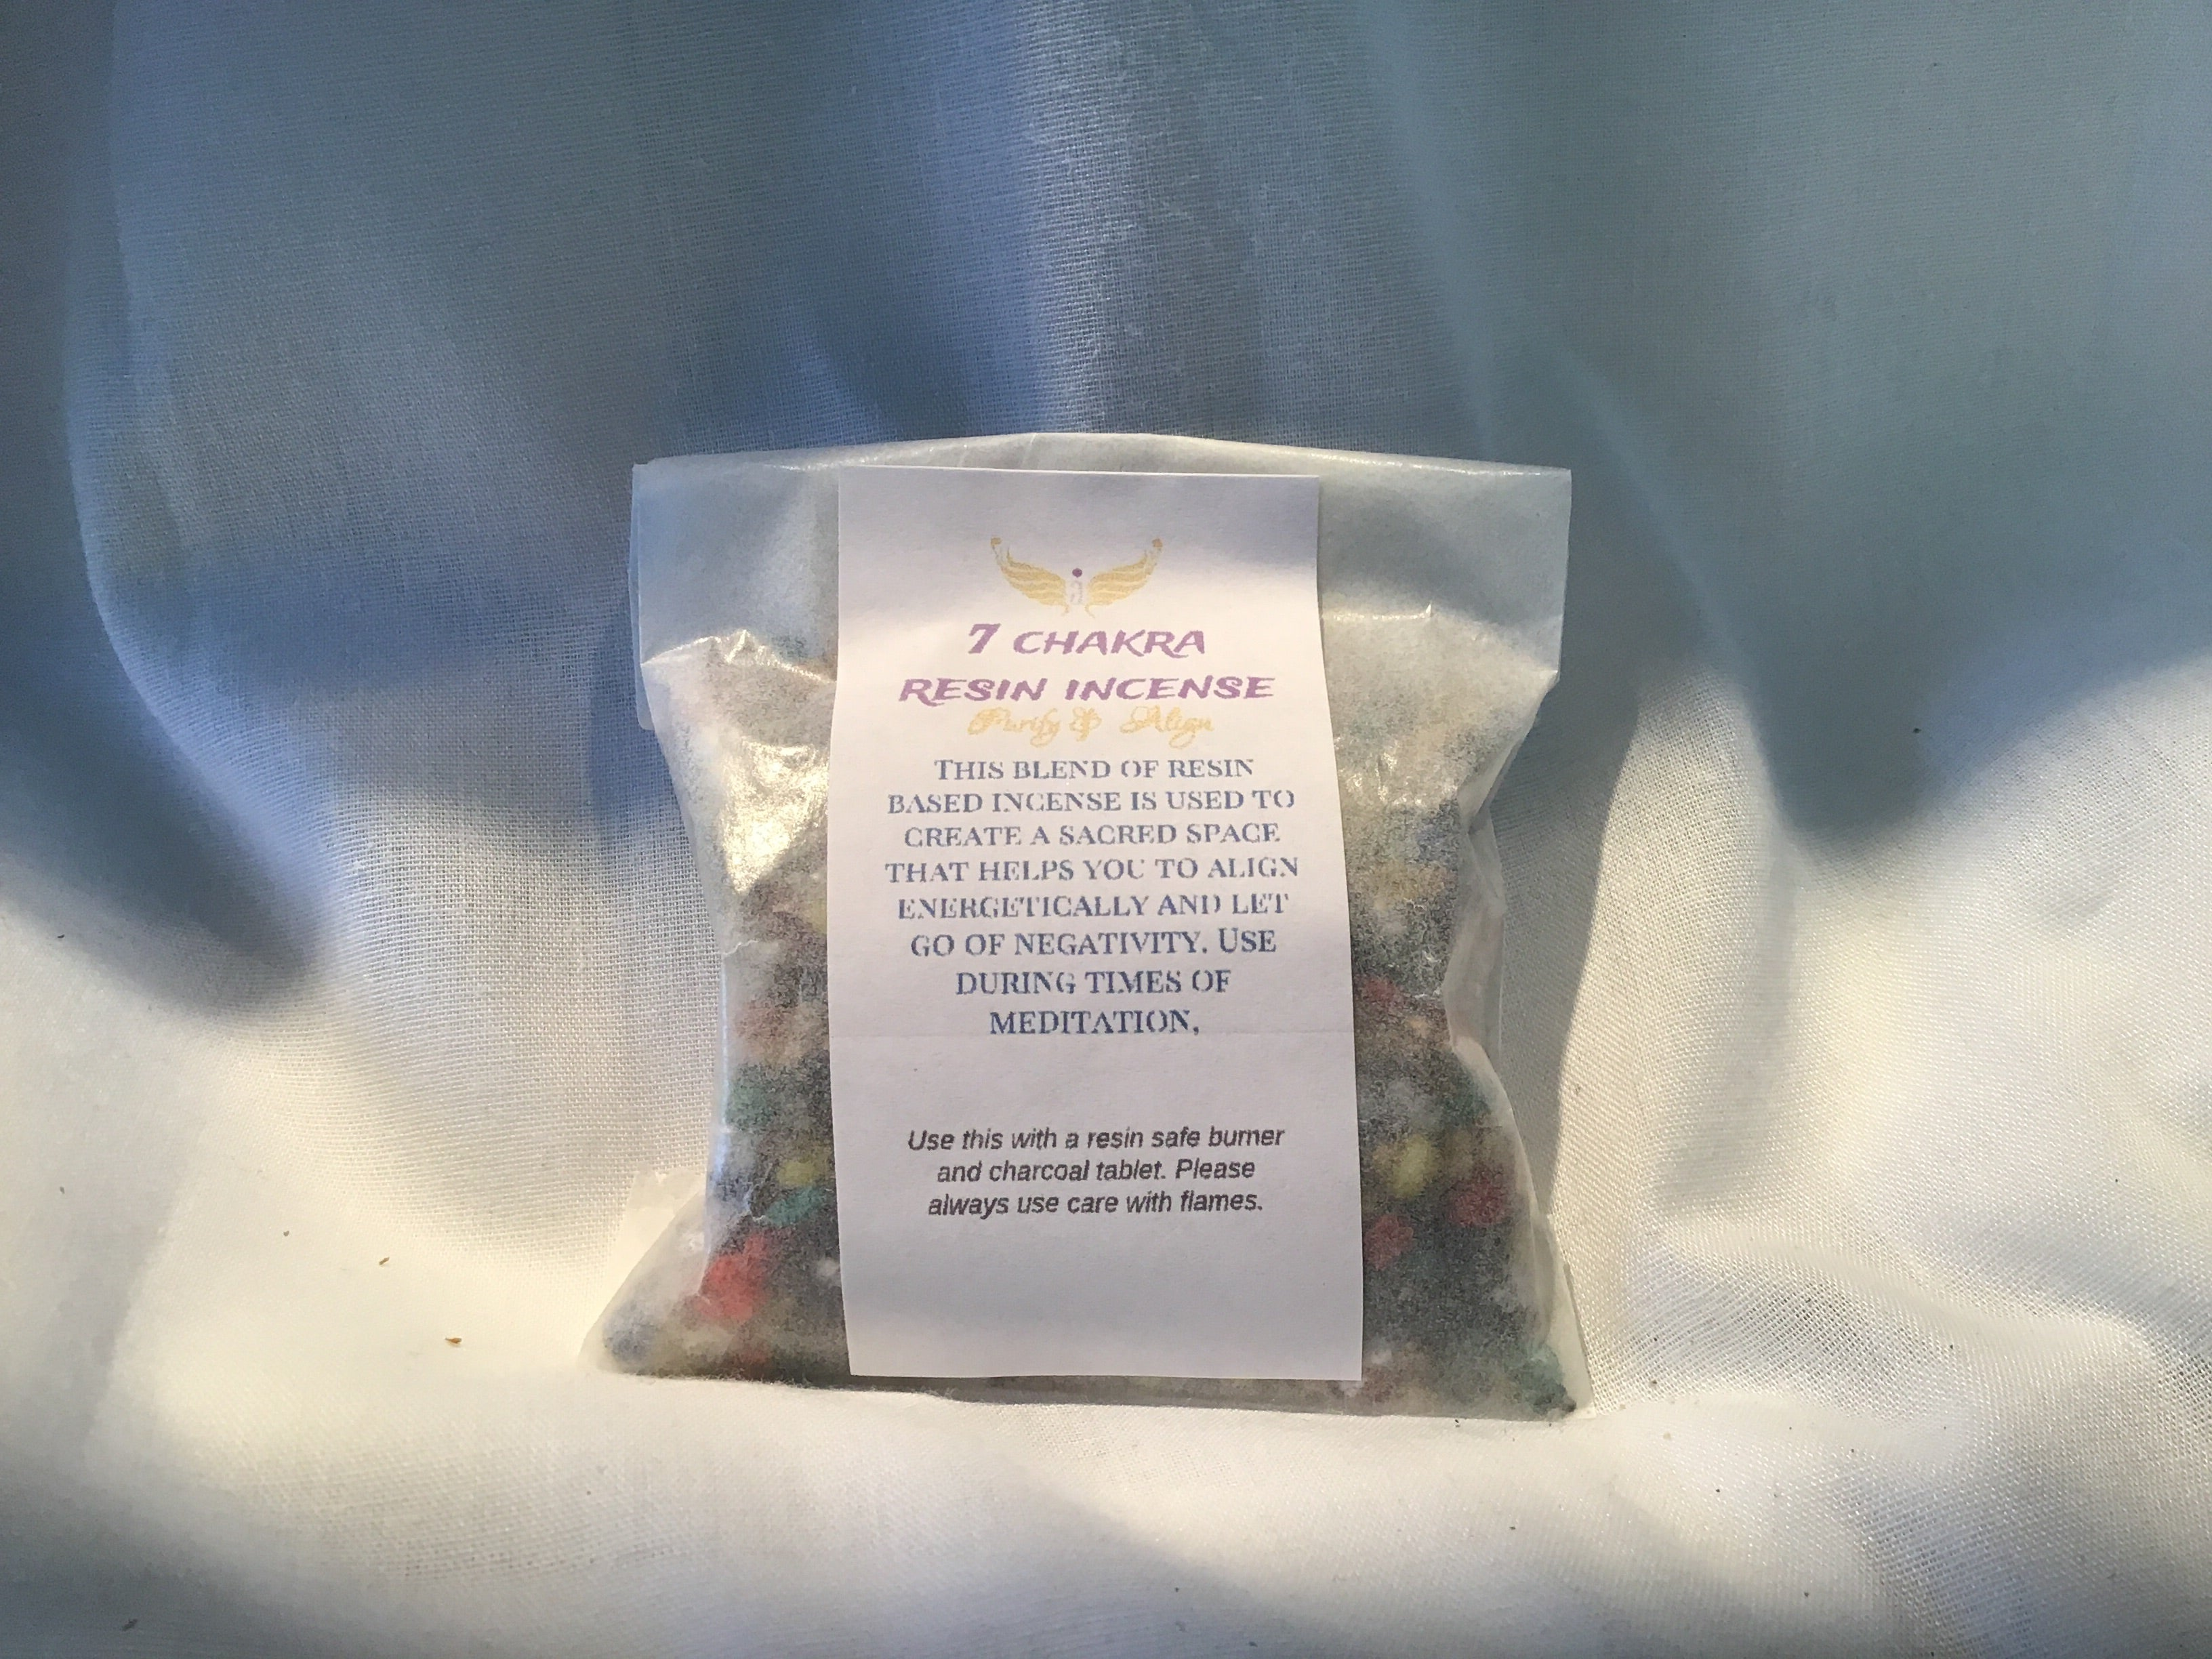 7 Chakra Resin Incense 1oz Essential Elements Wellness Llc